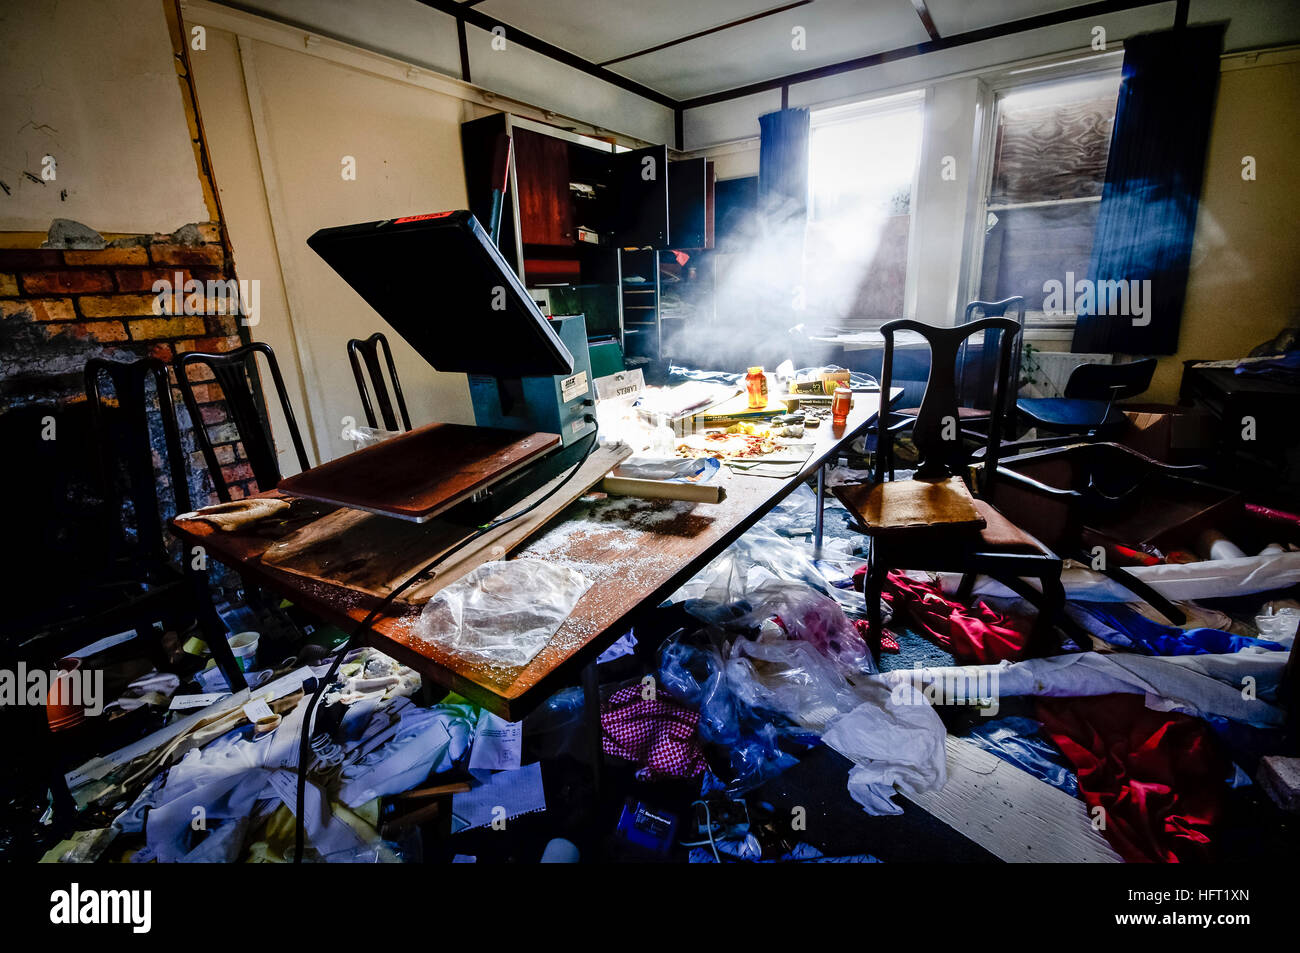 Very dirty room in a house belonging to someone who hoards rubbish - Stock Image